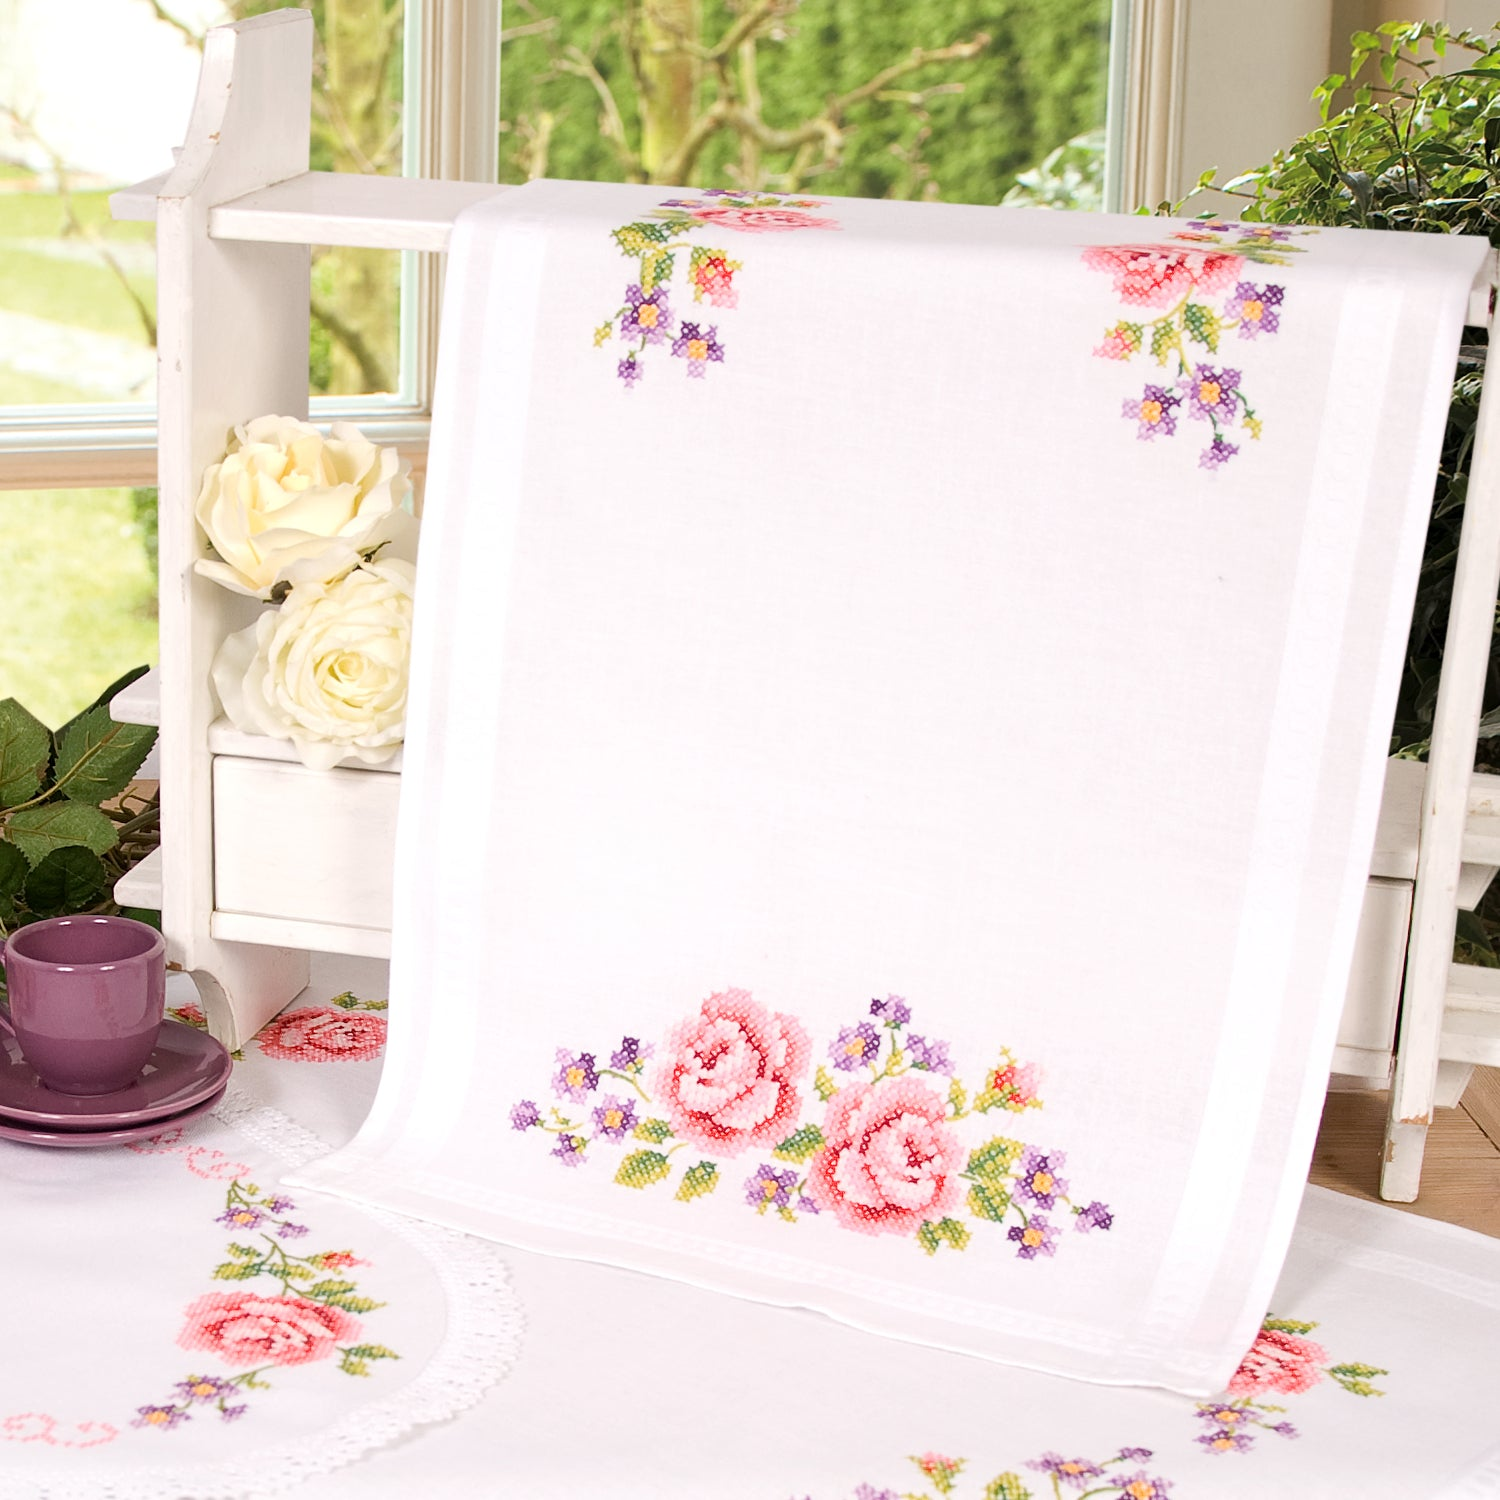 Roses Runner<br />Embroidery Kit